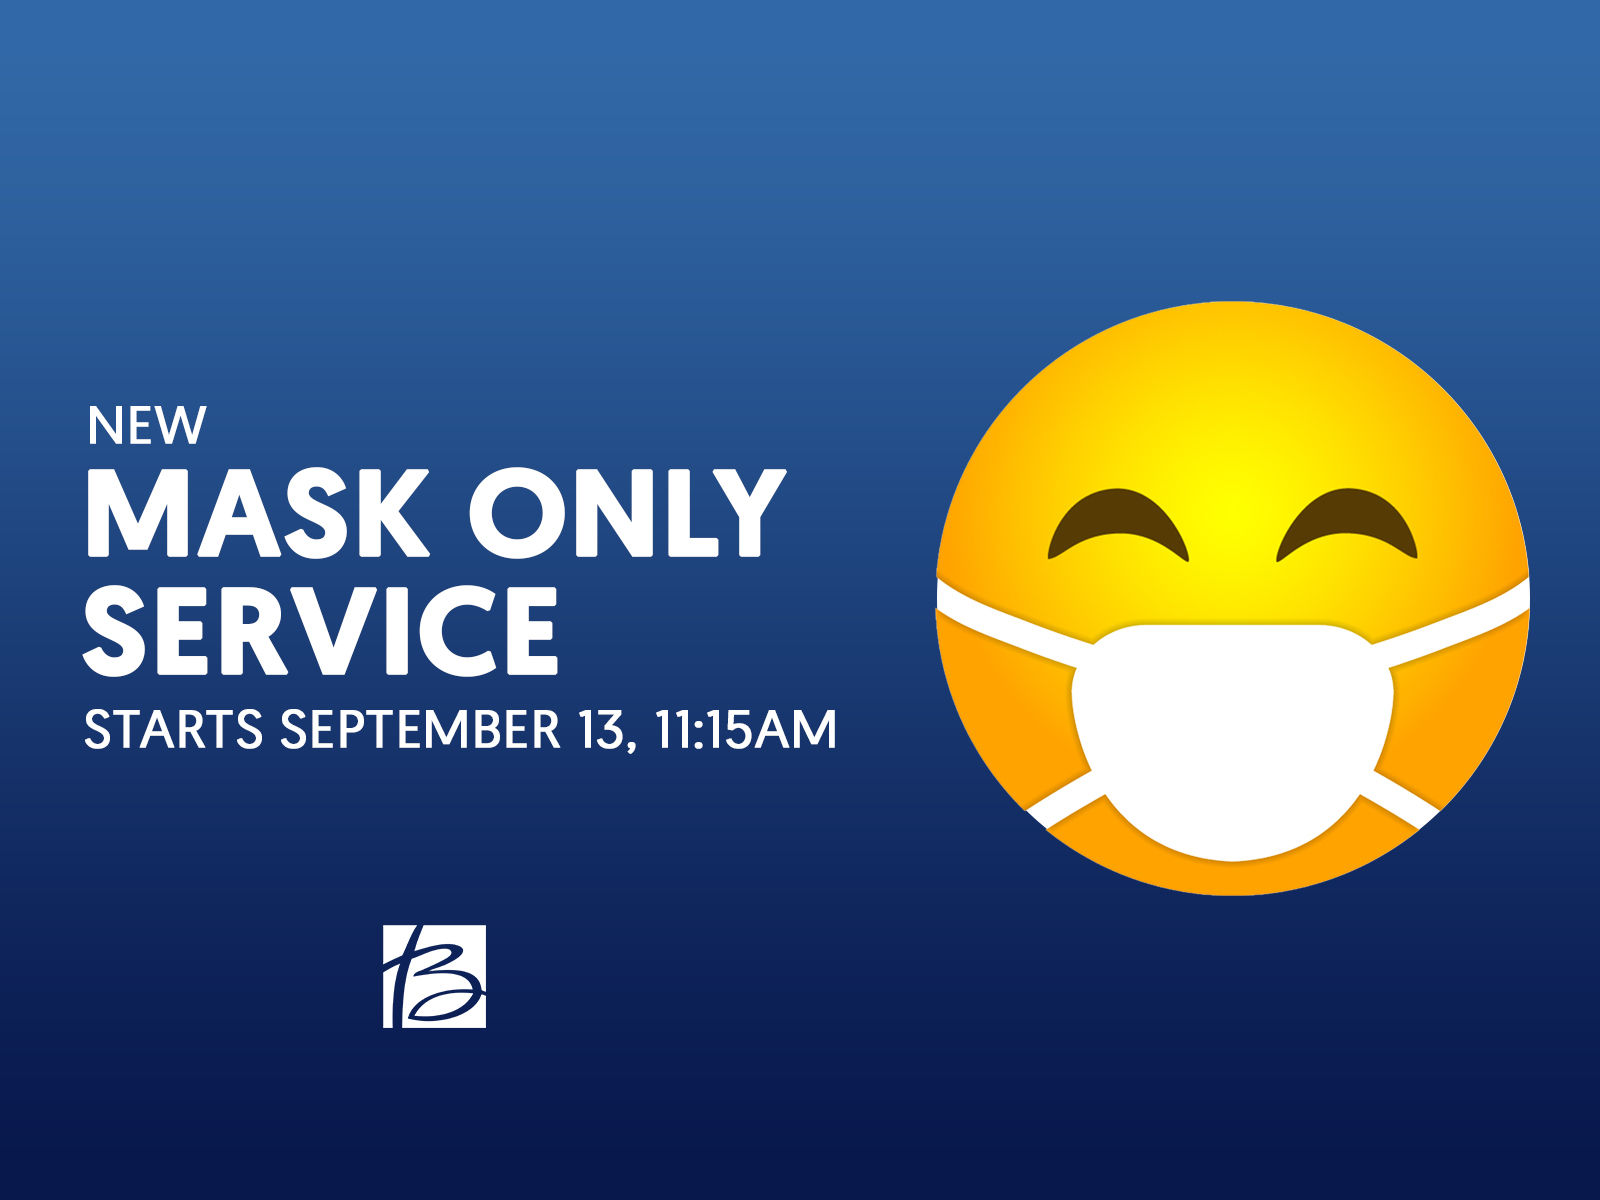 Mask Only Service with Emoji Mask Guy